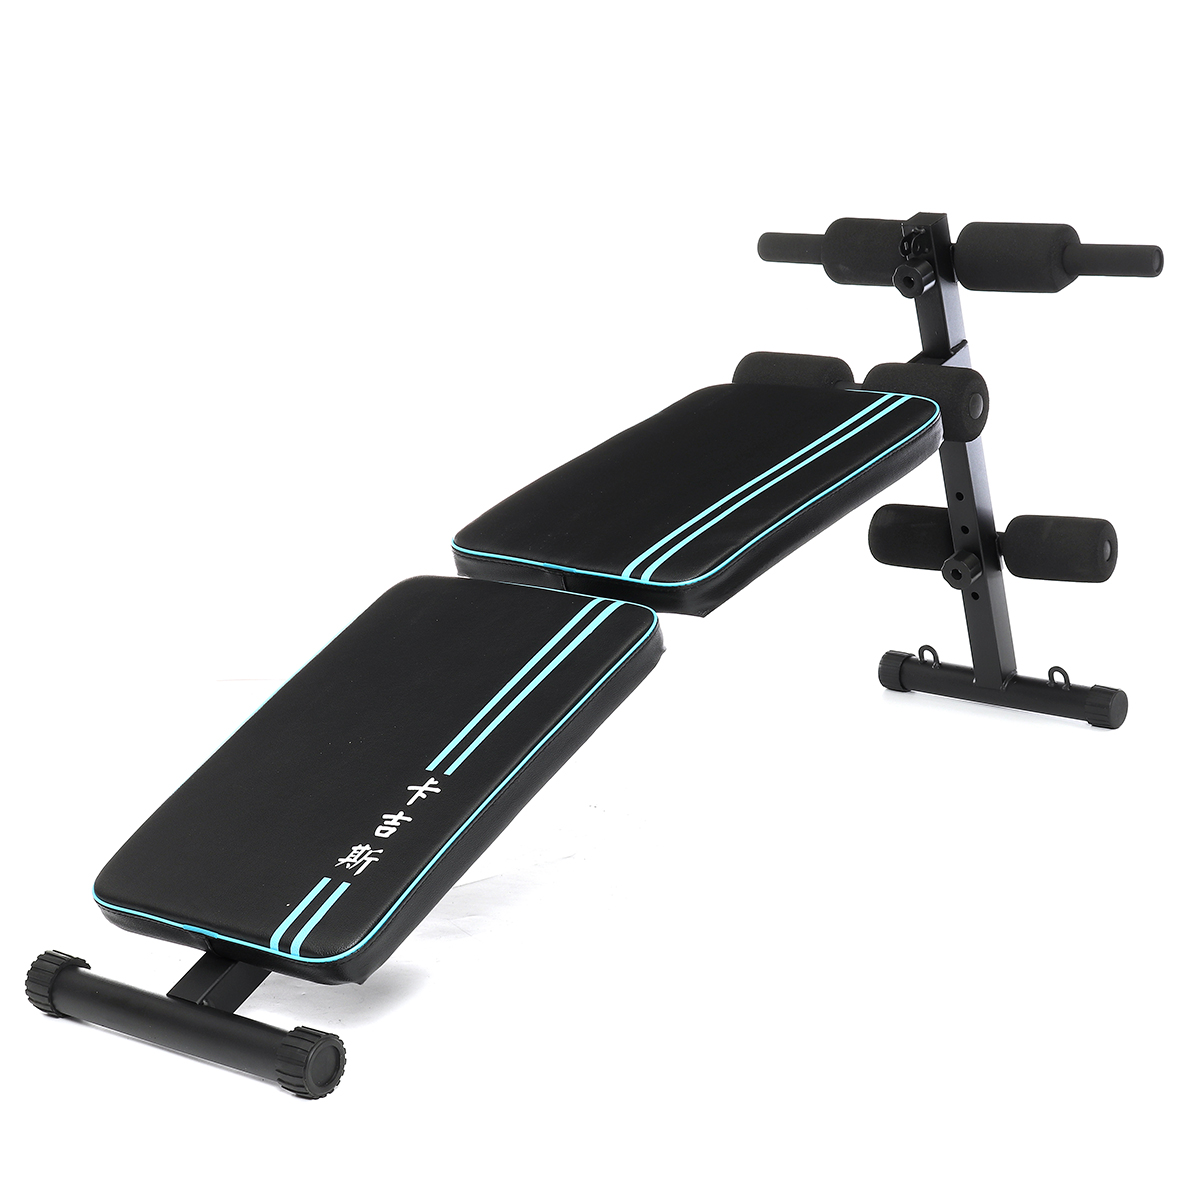 Multifunction Double Folding Exercise Bench Ab Sit-Ups Muscle Trainer Adjustable Bench Fitness Equipment